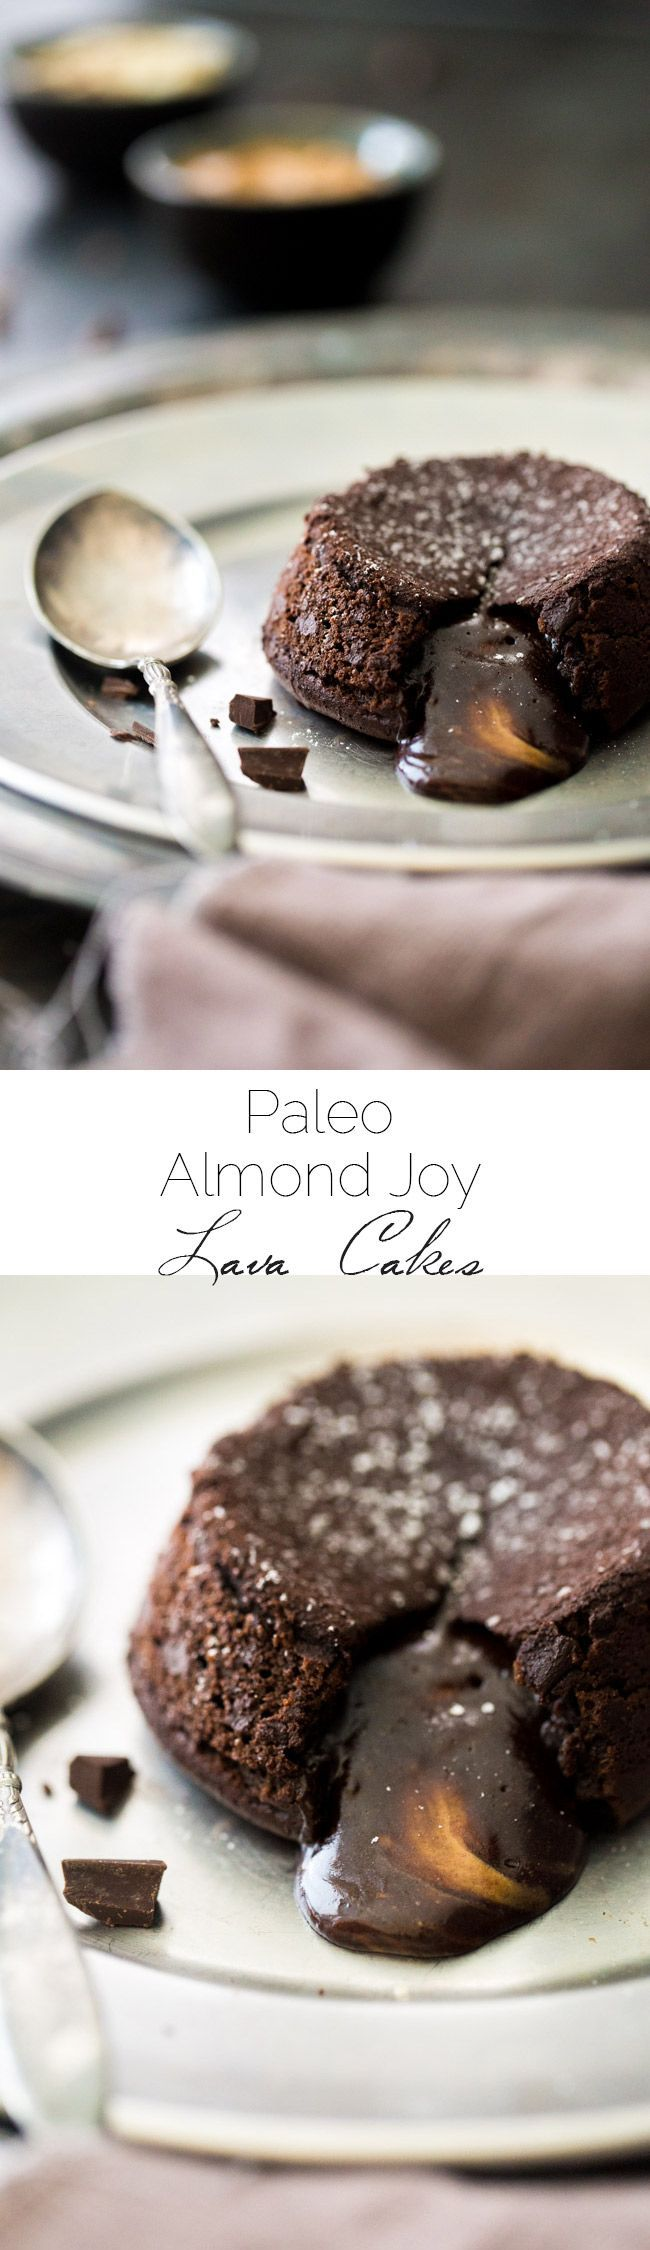 Paleo Chocolate Lava Cake Recipe - So rich and chocolatey that you would NEVER know these are healthy! They're made with coconut oil and almond butter, so they taste like an Almond Joy bar! Perfect for Valentine's Day!  | Foodfaithfitness.com |